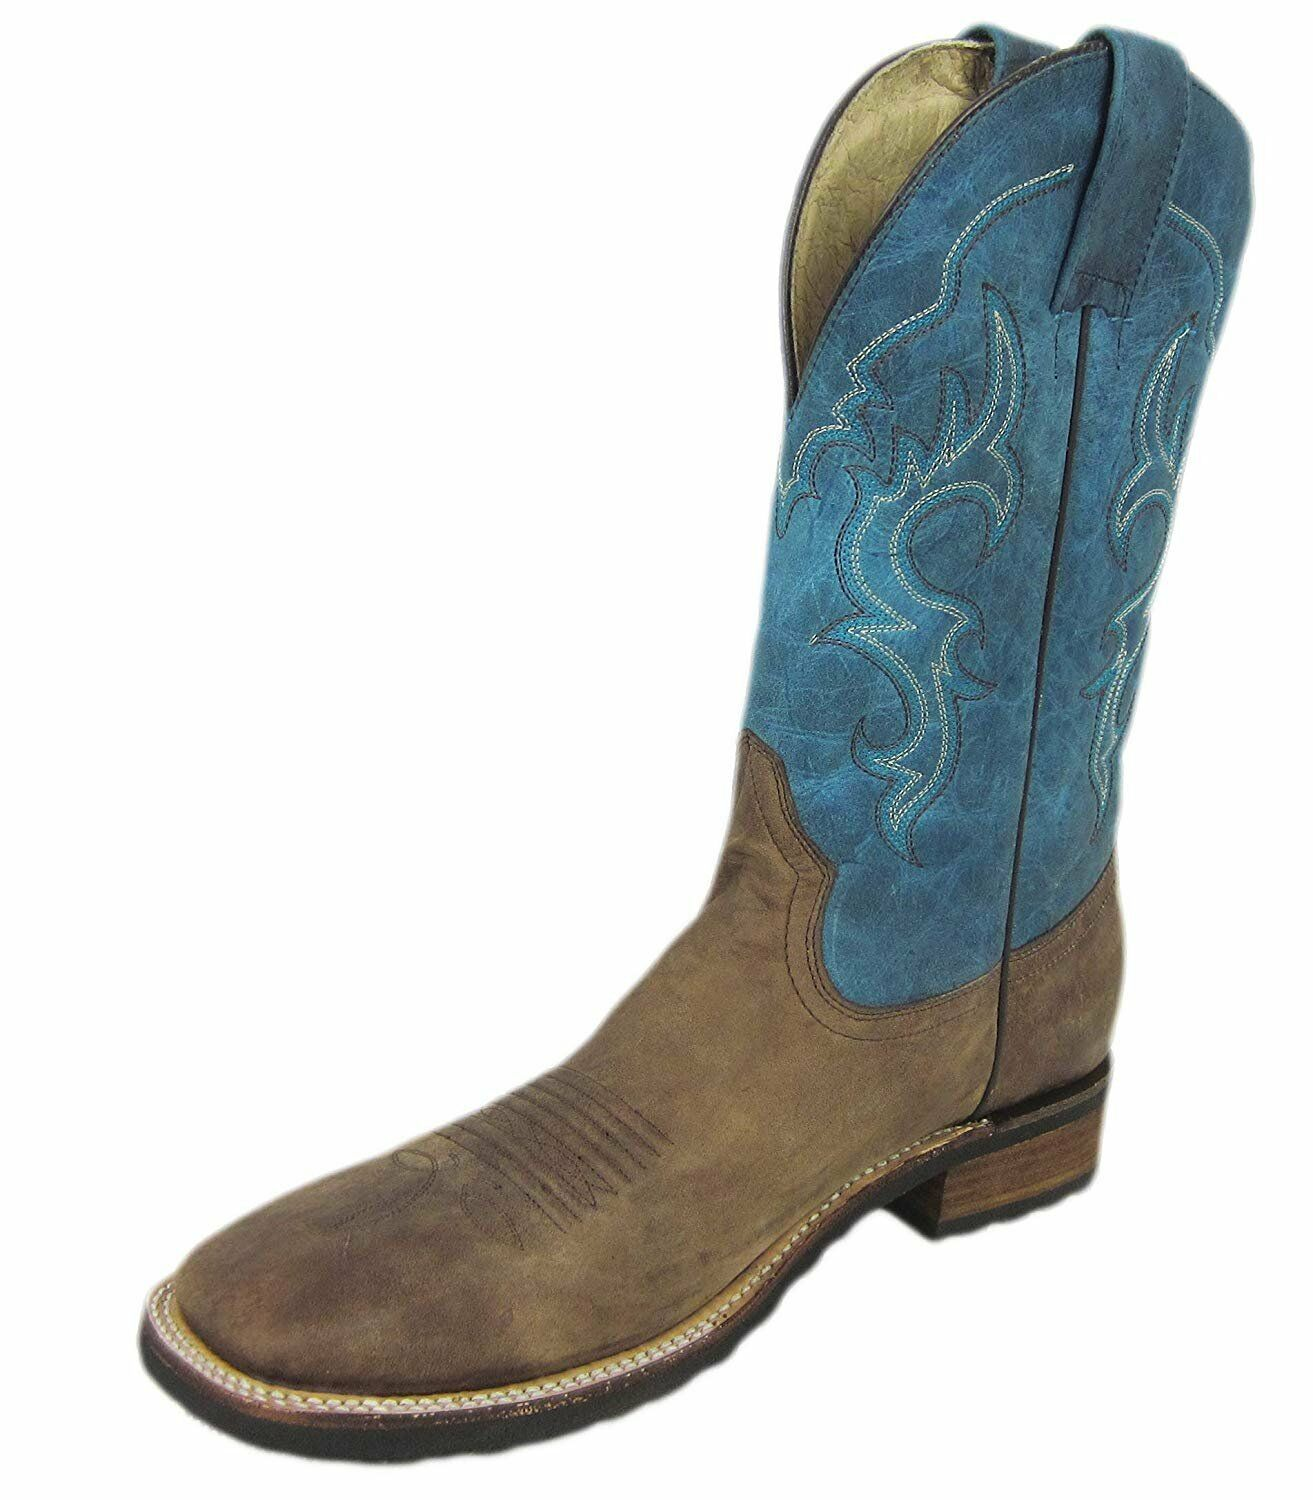 CORRAL Circle G Men's bluee Brown Rubber Sole Sq Toe Western Boots L5234